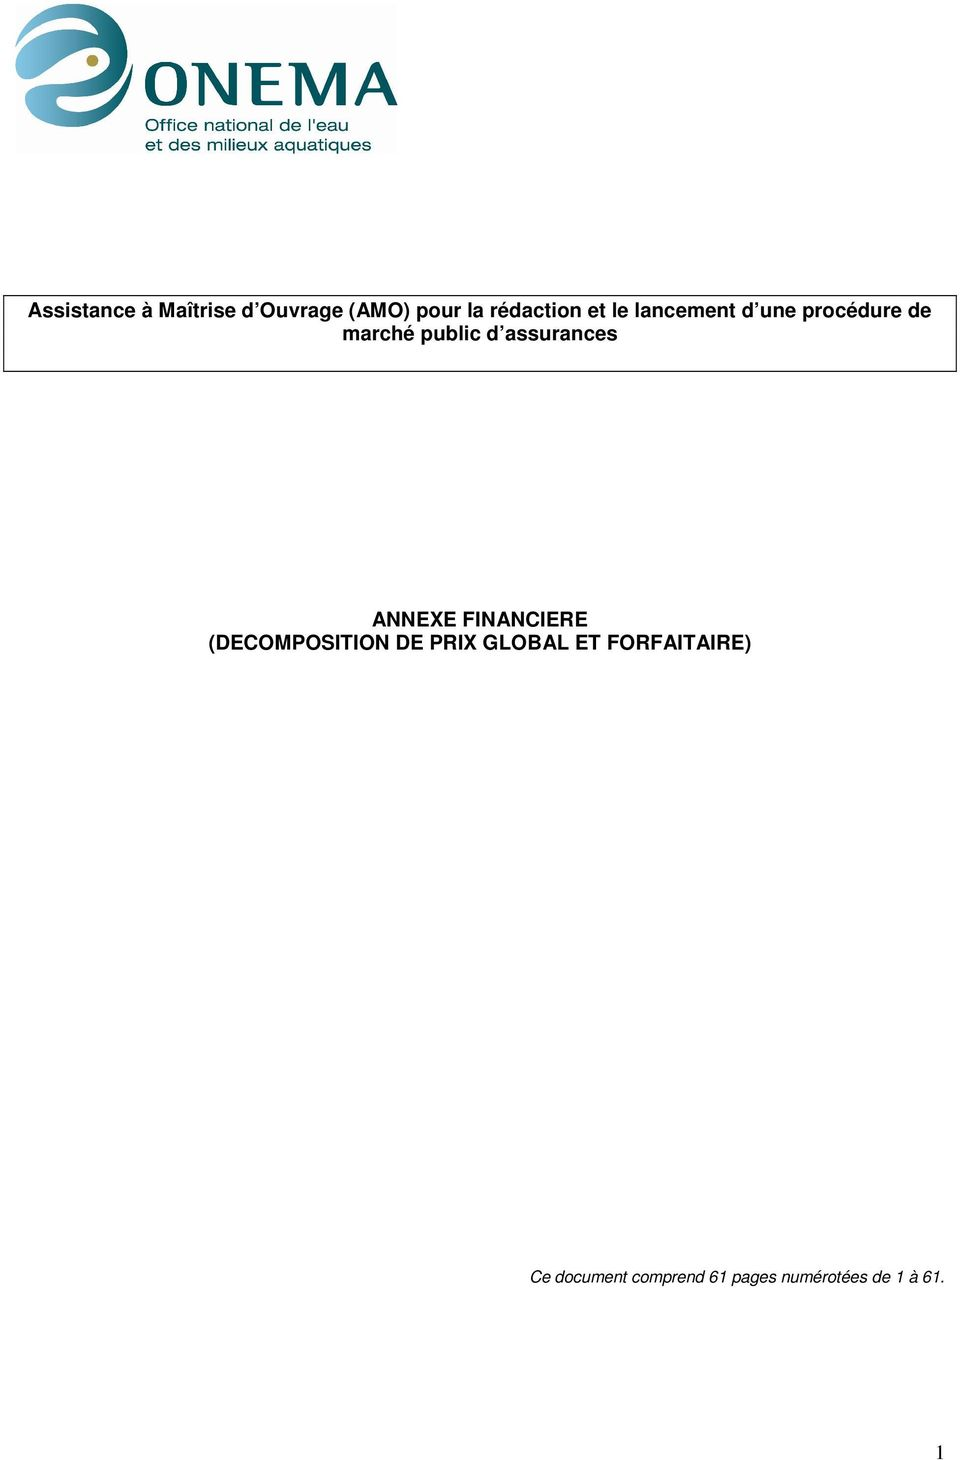 ANNEXE FINANCIERE (DECOMPOSITION DE PRIX GLOBAL ET